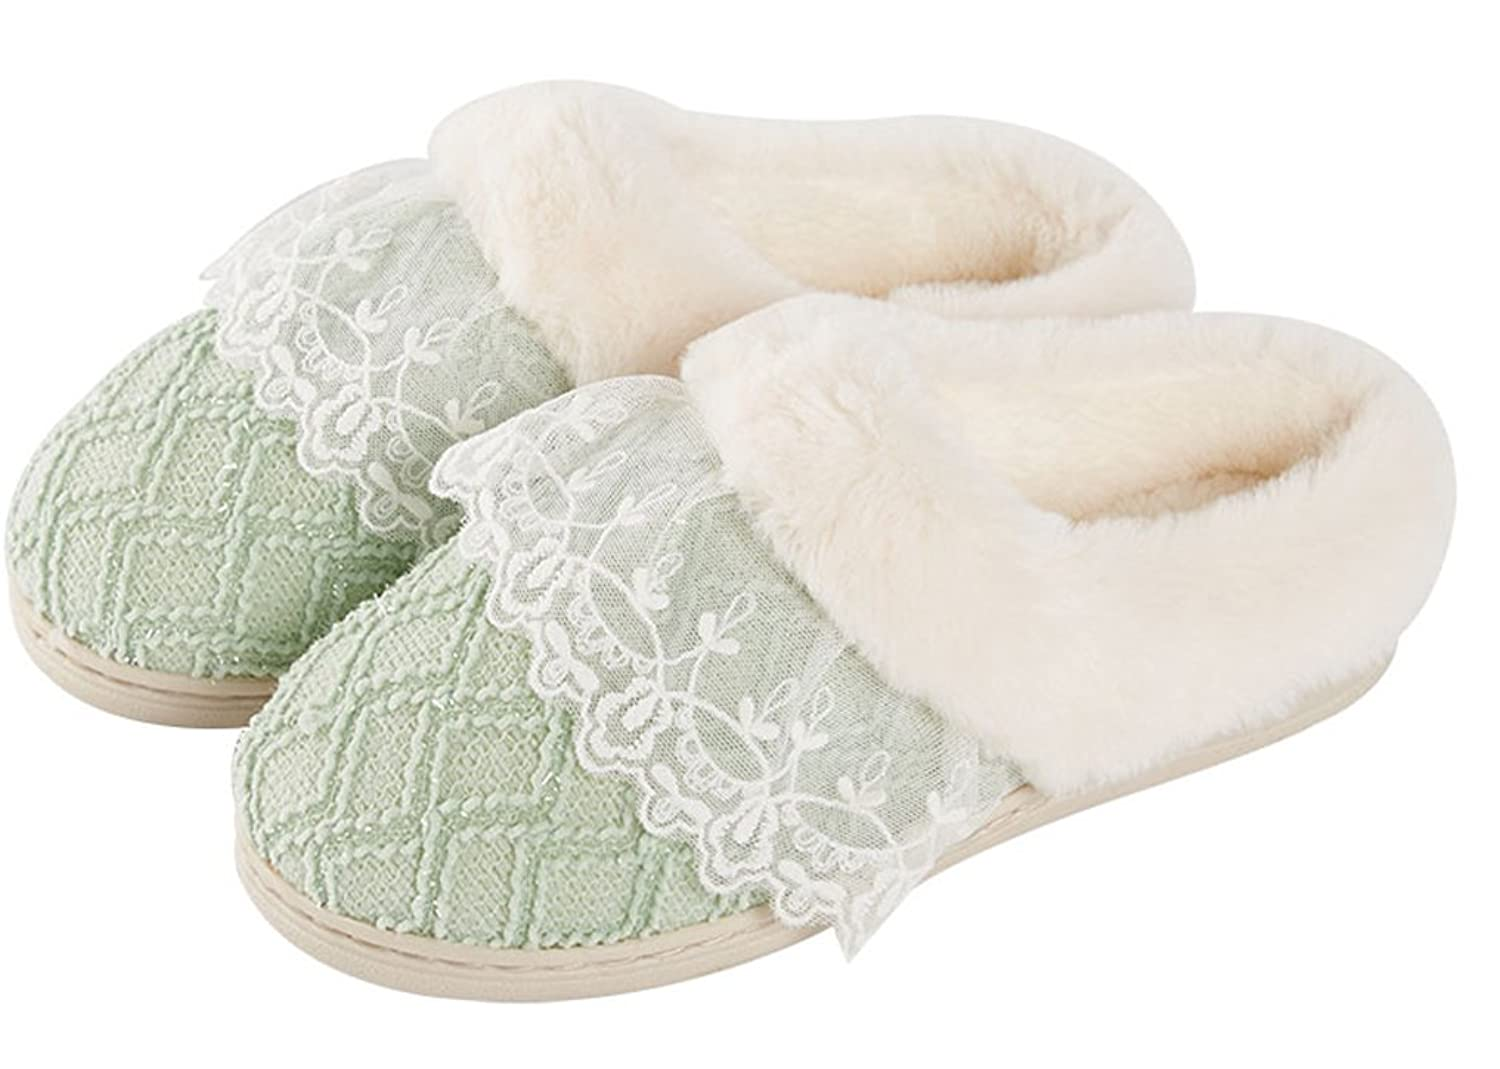 FreLO Women's Green Cotton Lace Adorable Winter Slippers Slippers